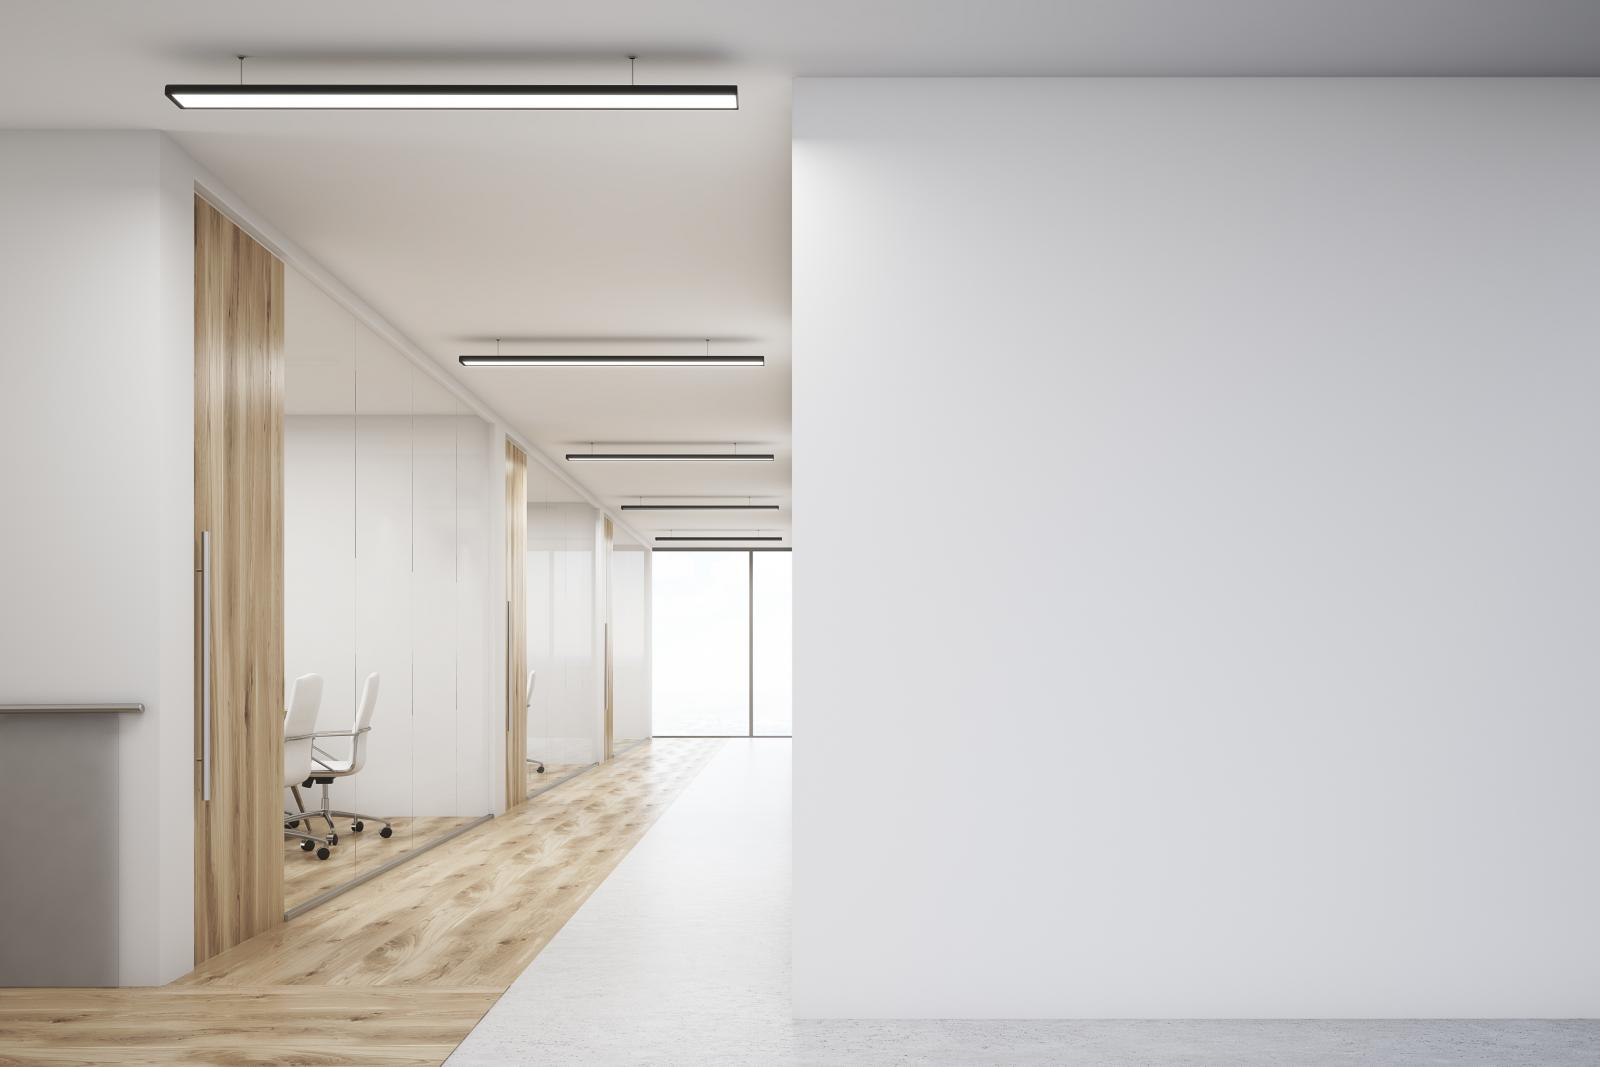 moving into empty office and need storage solutions